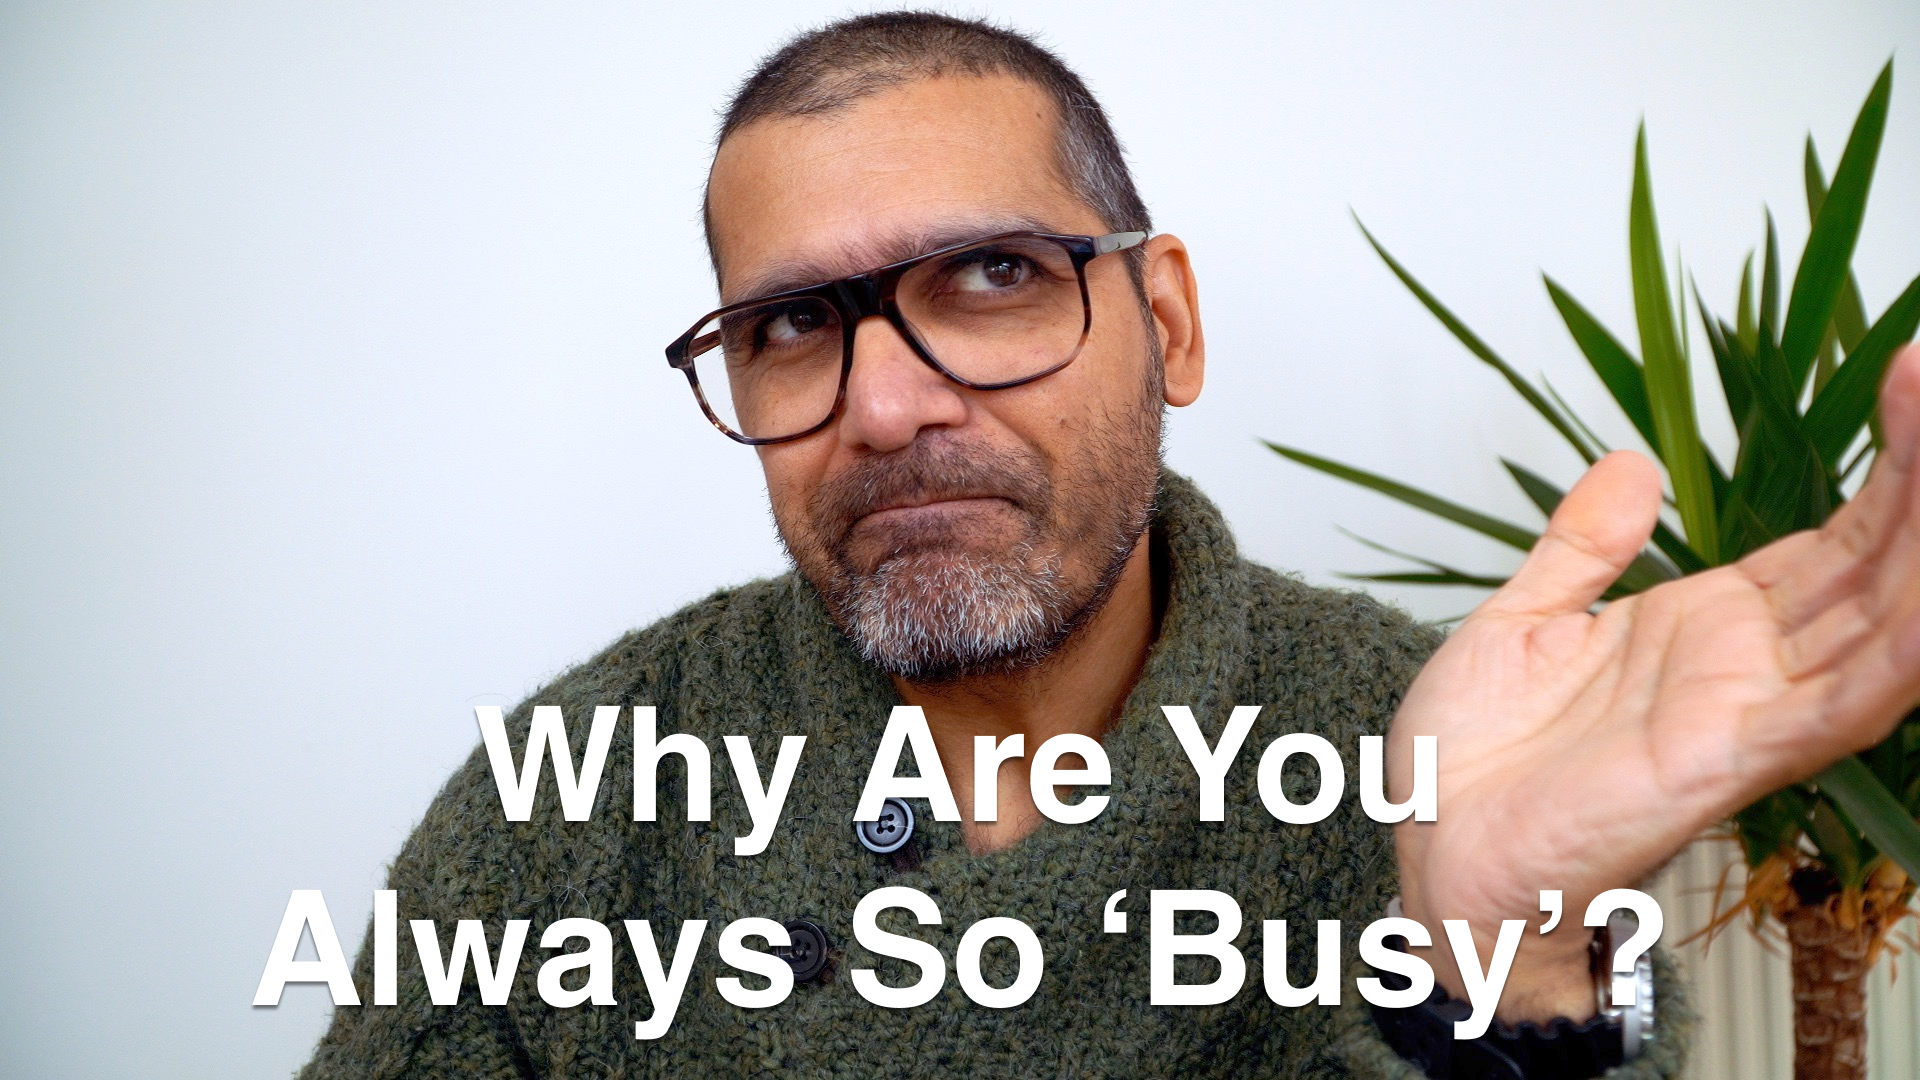 Why Are You Always So Busy?